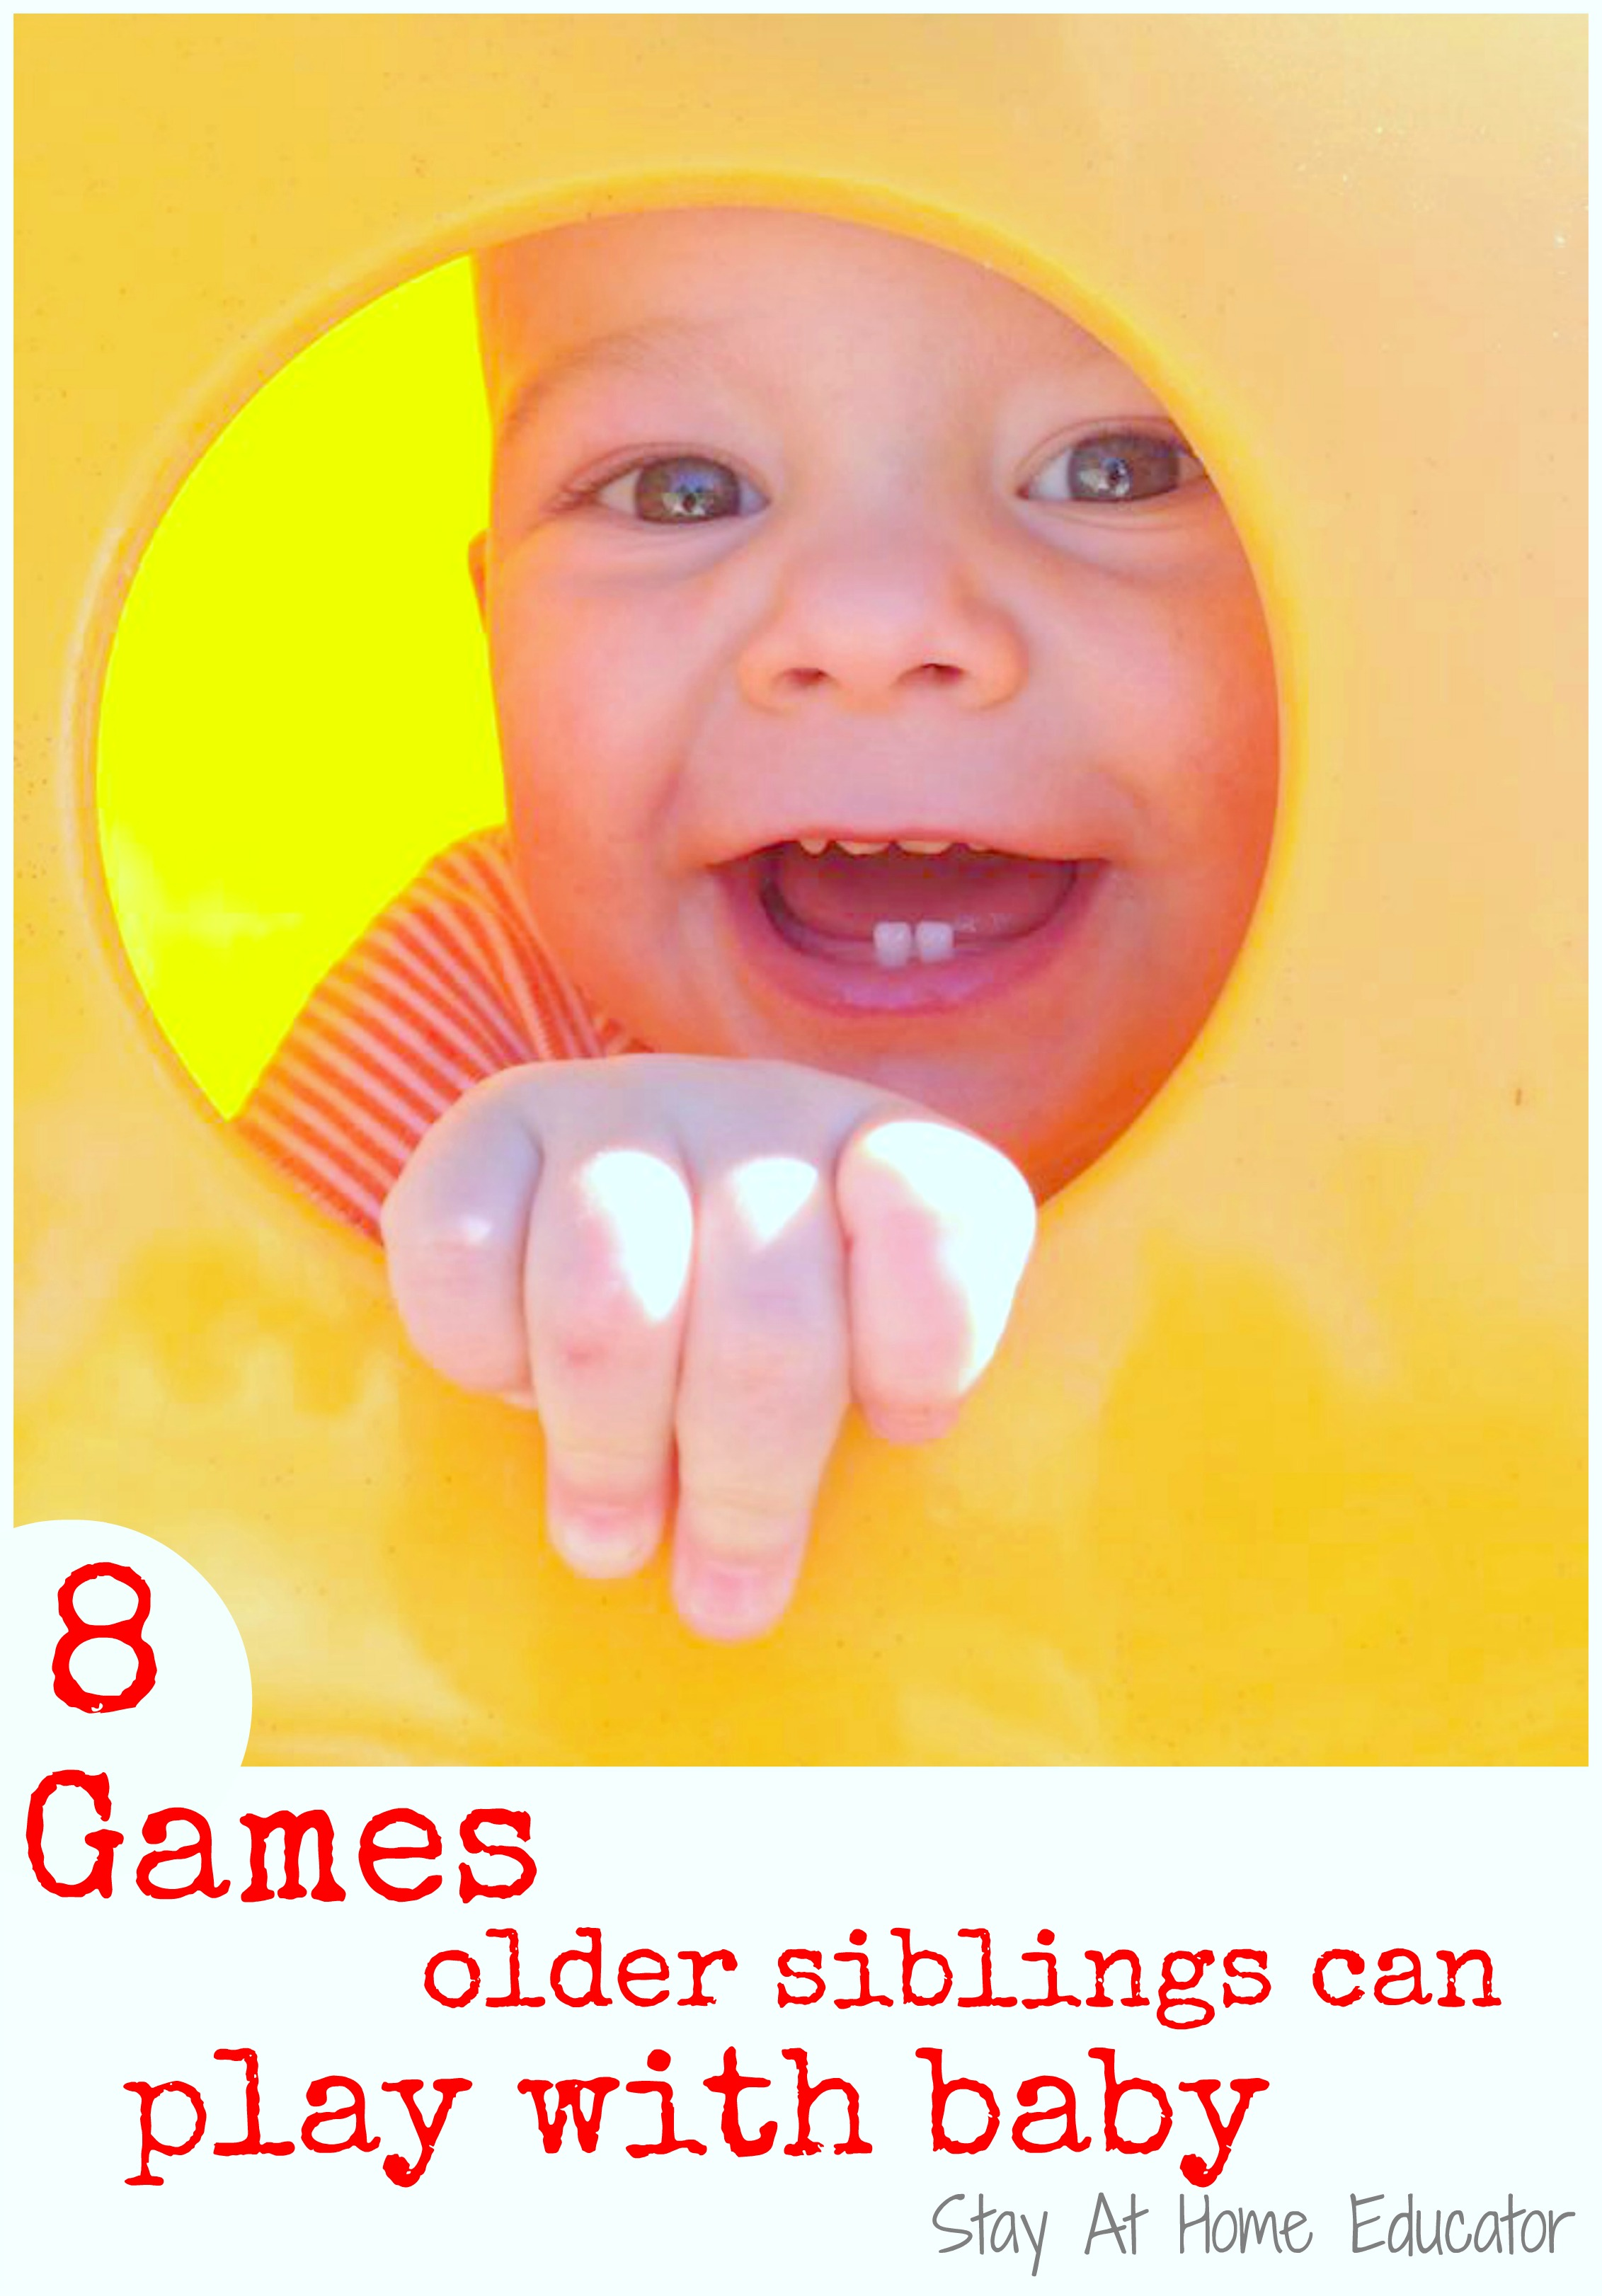 Eight Games Older Siblings Can Play With Baby